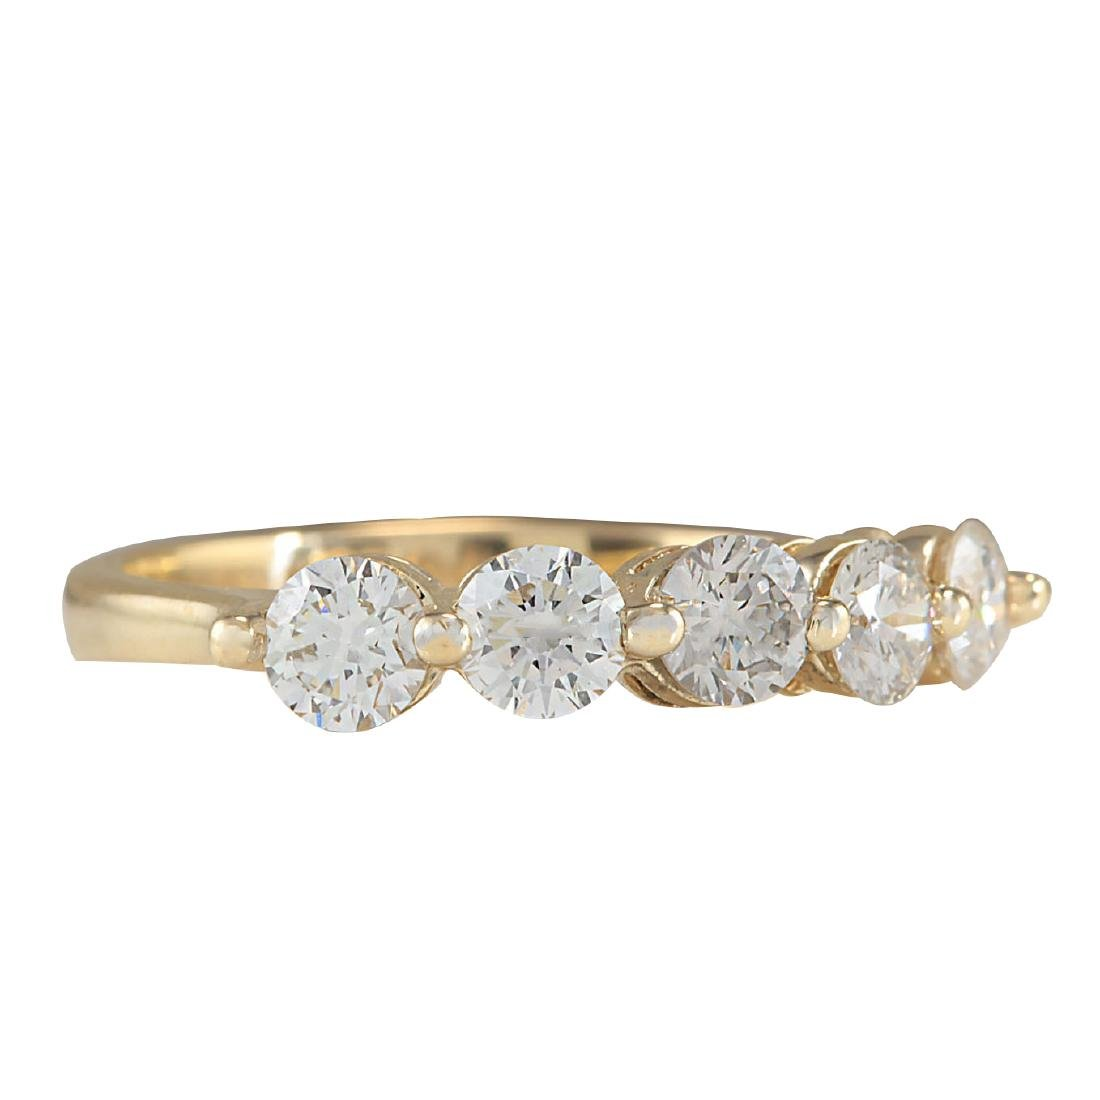 1.00CTW Natural Diamond Ring In 18K Yellow Gold - 2